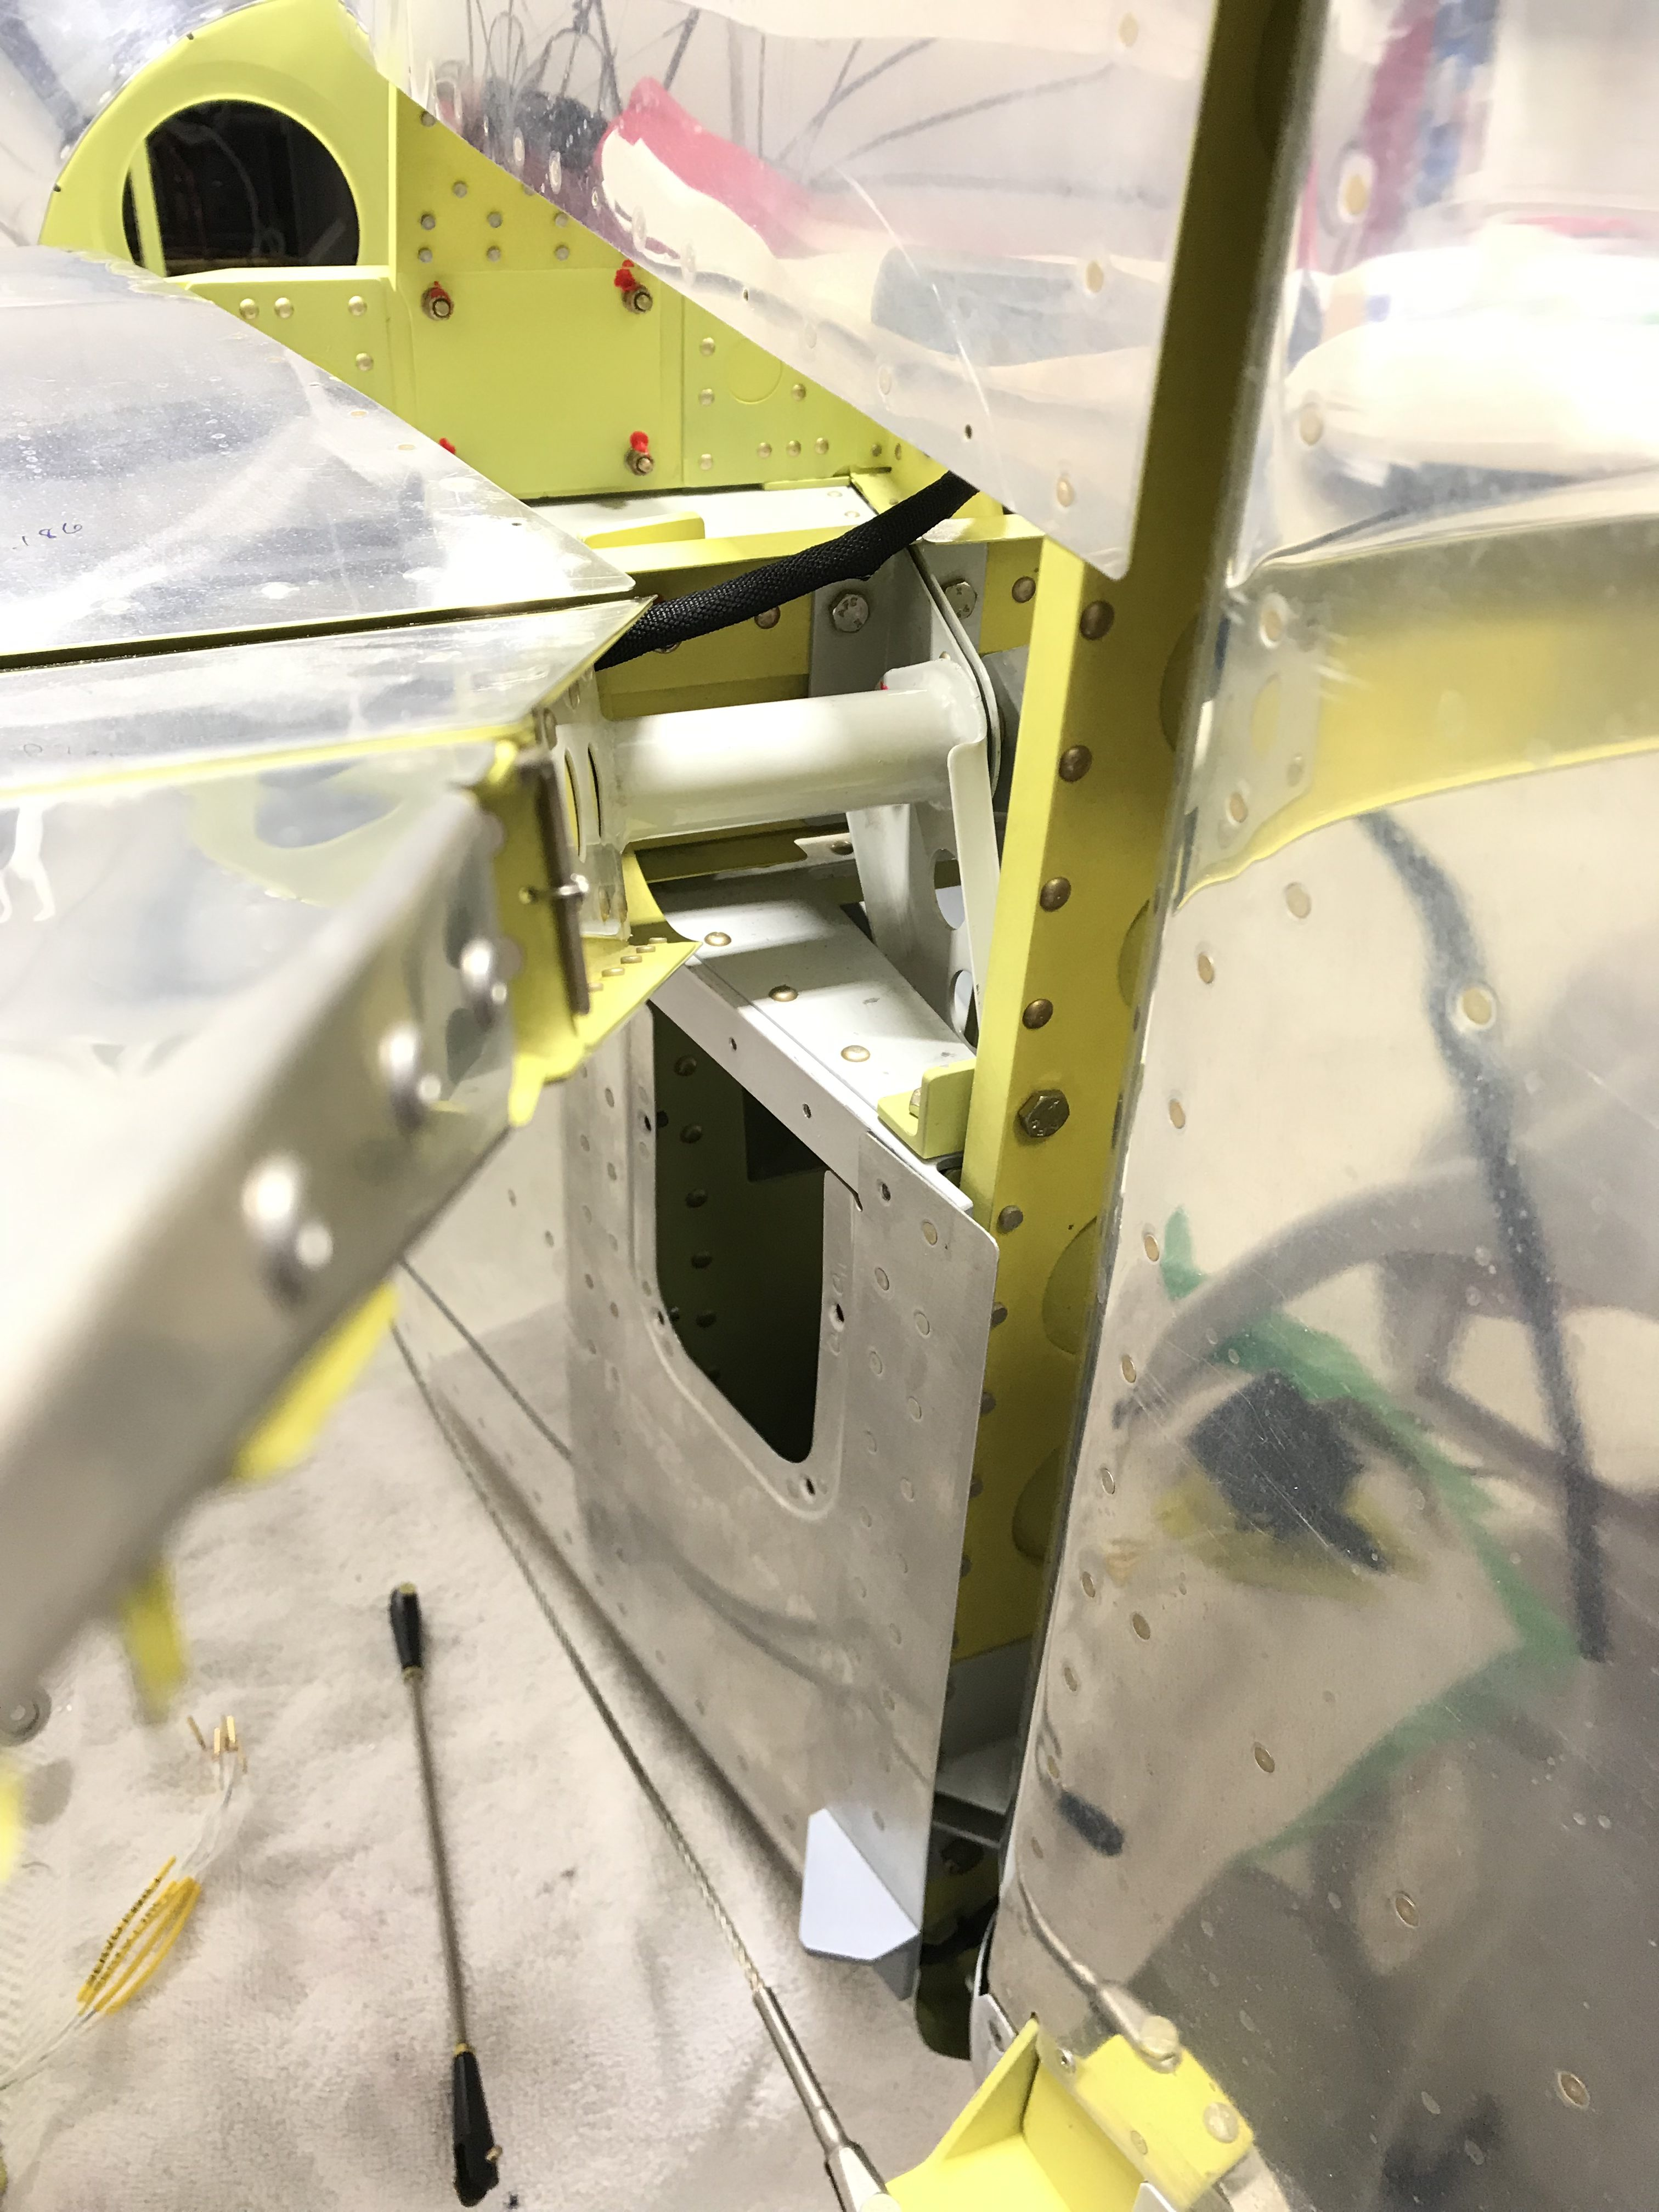 Routing pitch trim wire into the elevator